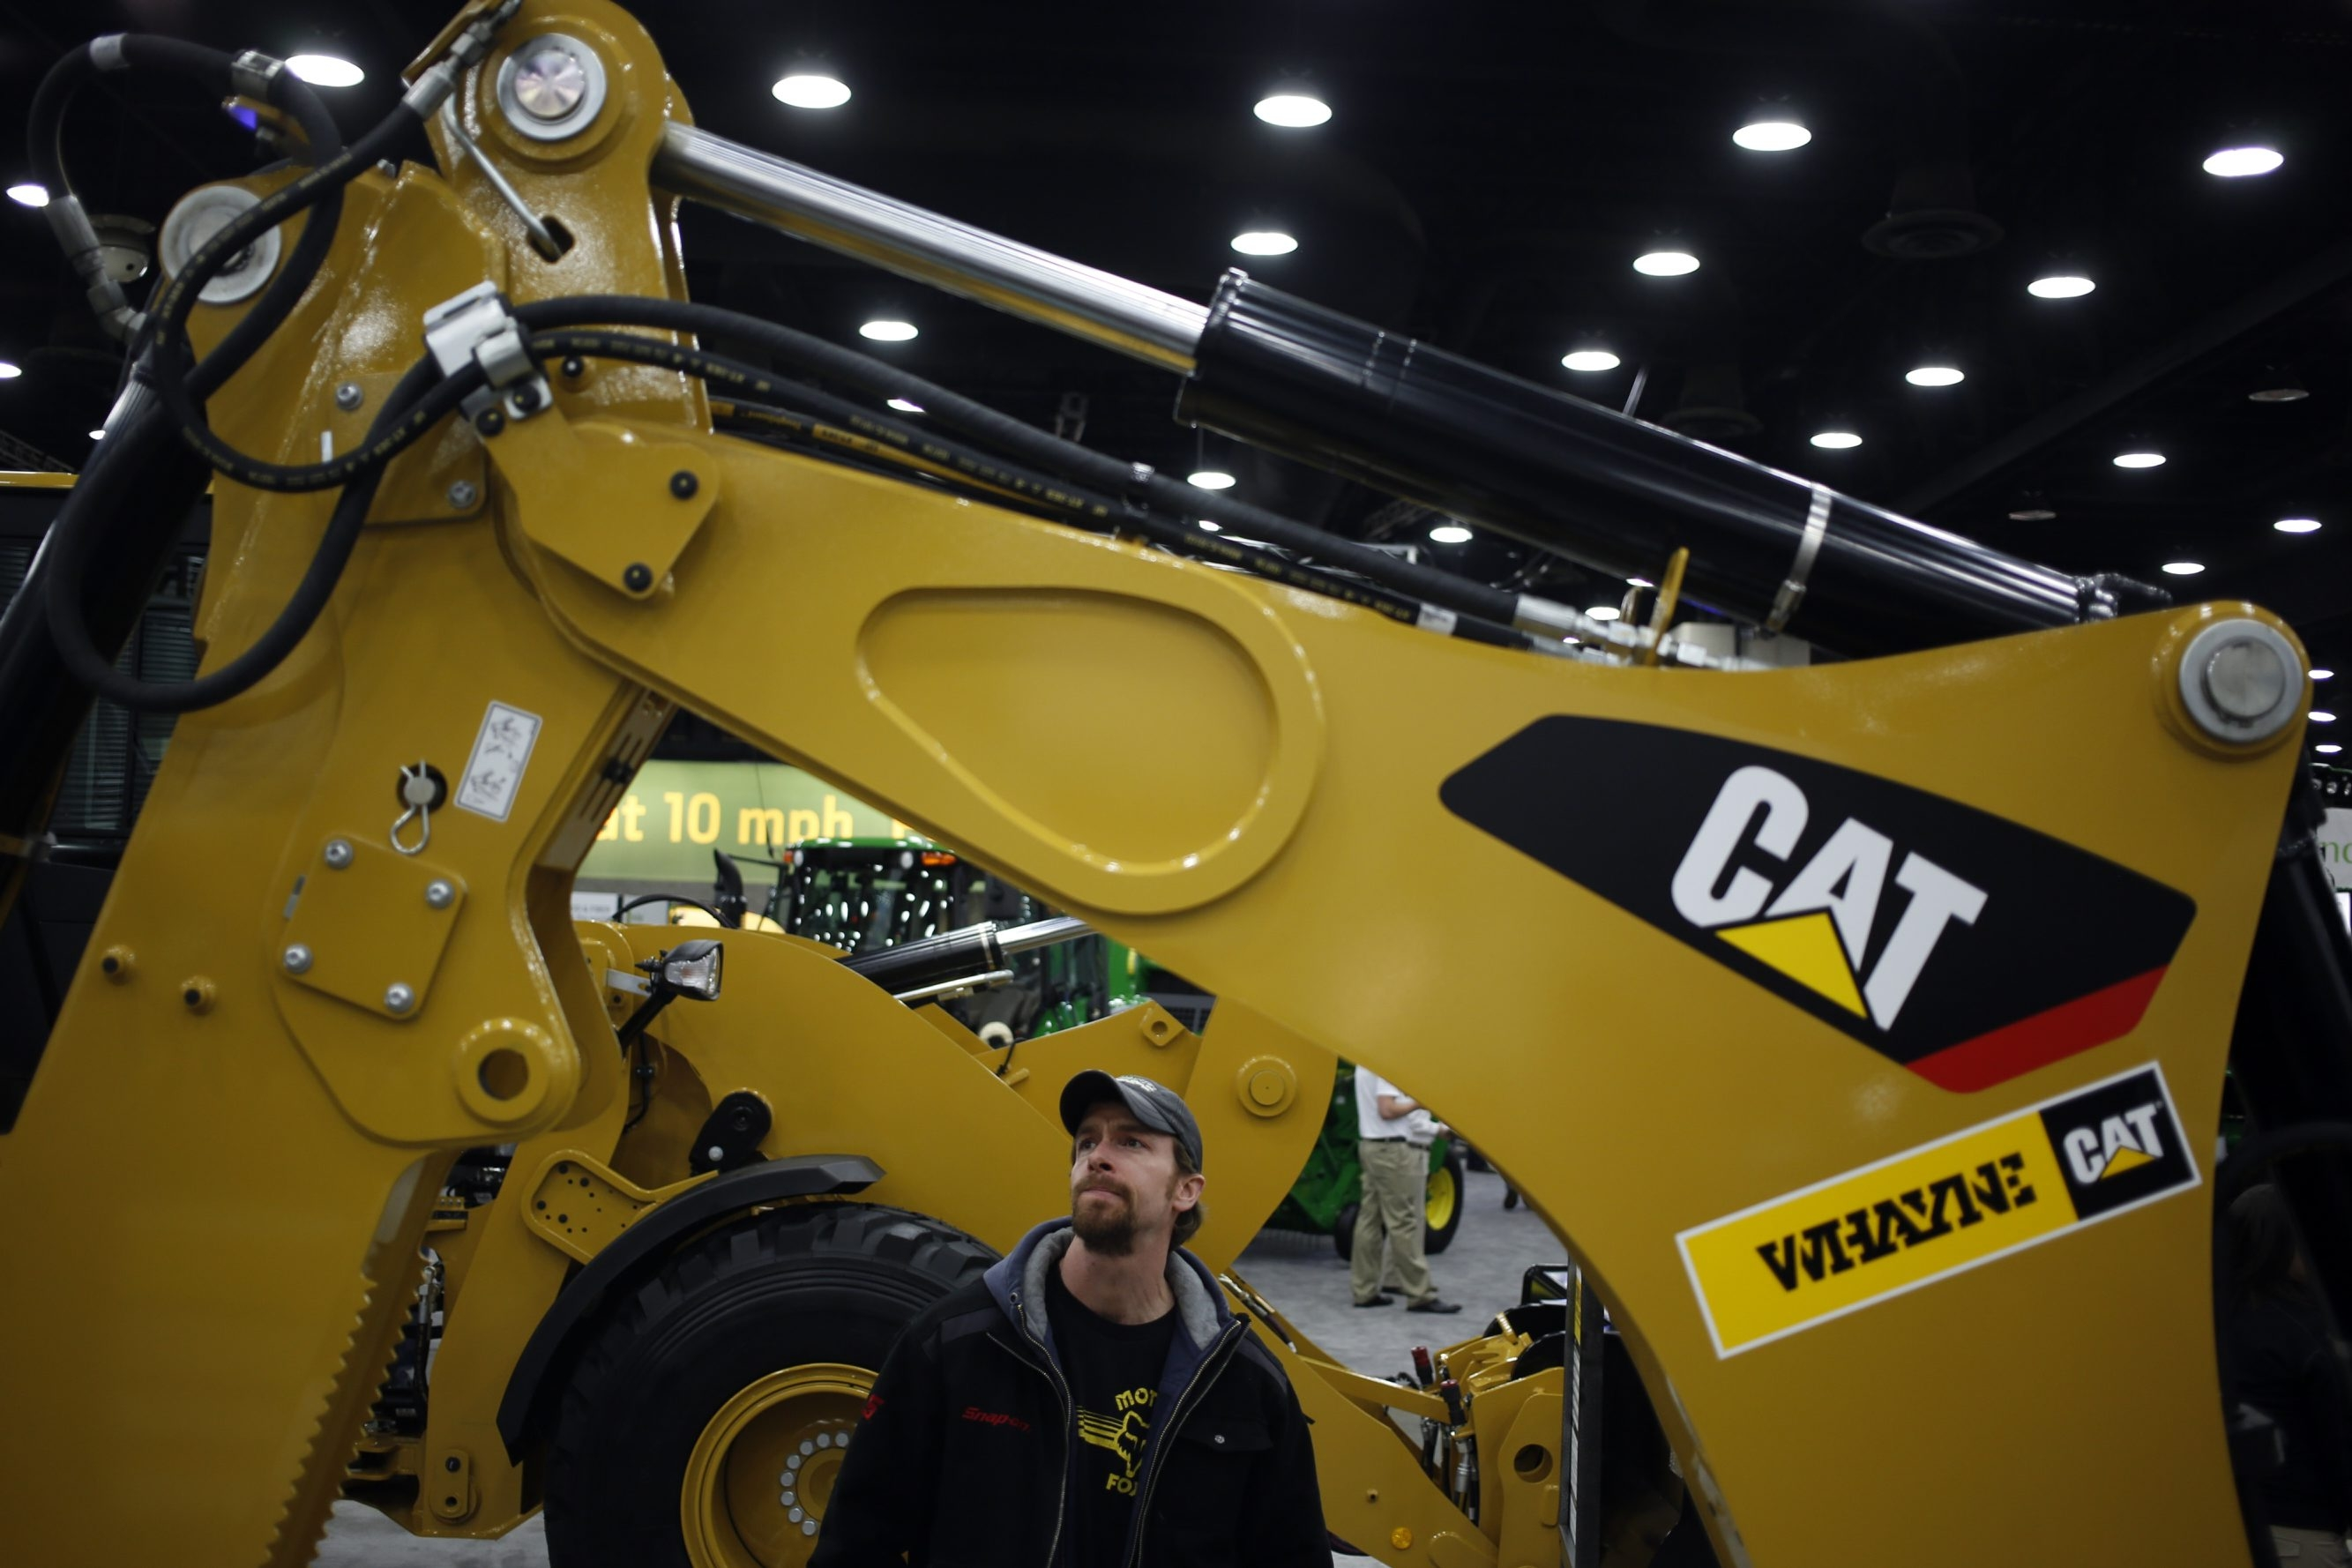 An attendee examines a Caterpillar backhoe loader at the National Farm Machinery Show in Louisville, Ky. The company is facing reduced demand for its equipment as oil prices fall and drillers slash spending.